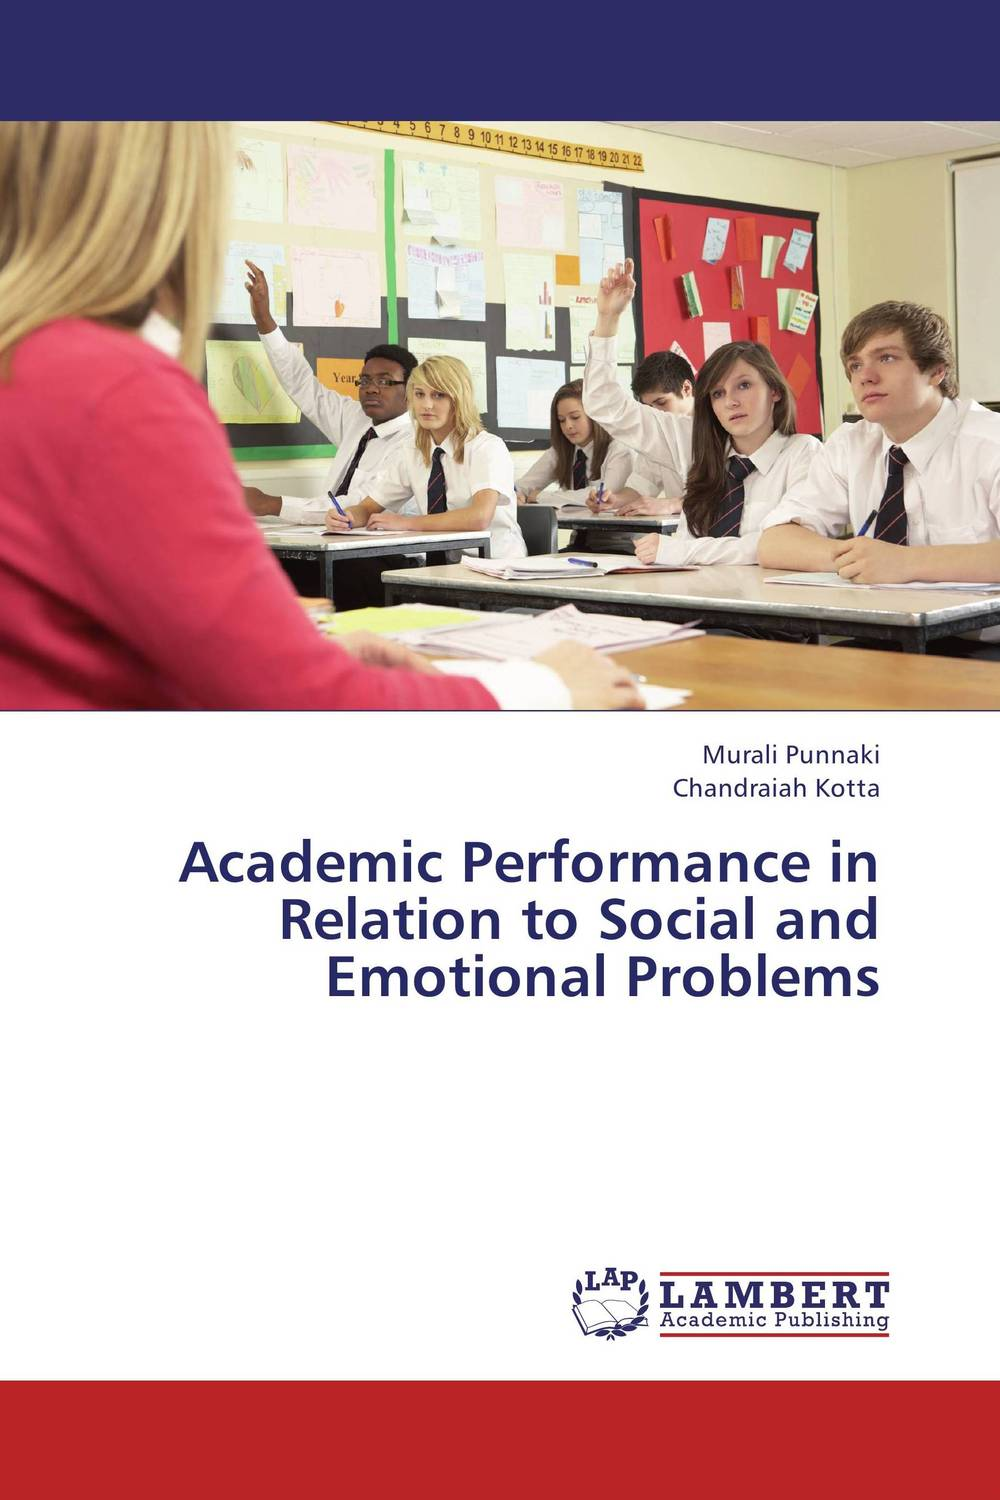 Academic Performance in Relation to Social and Emotional Problems